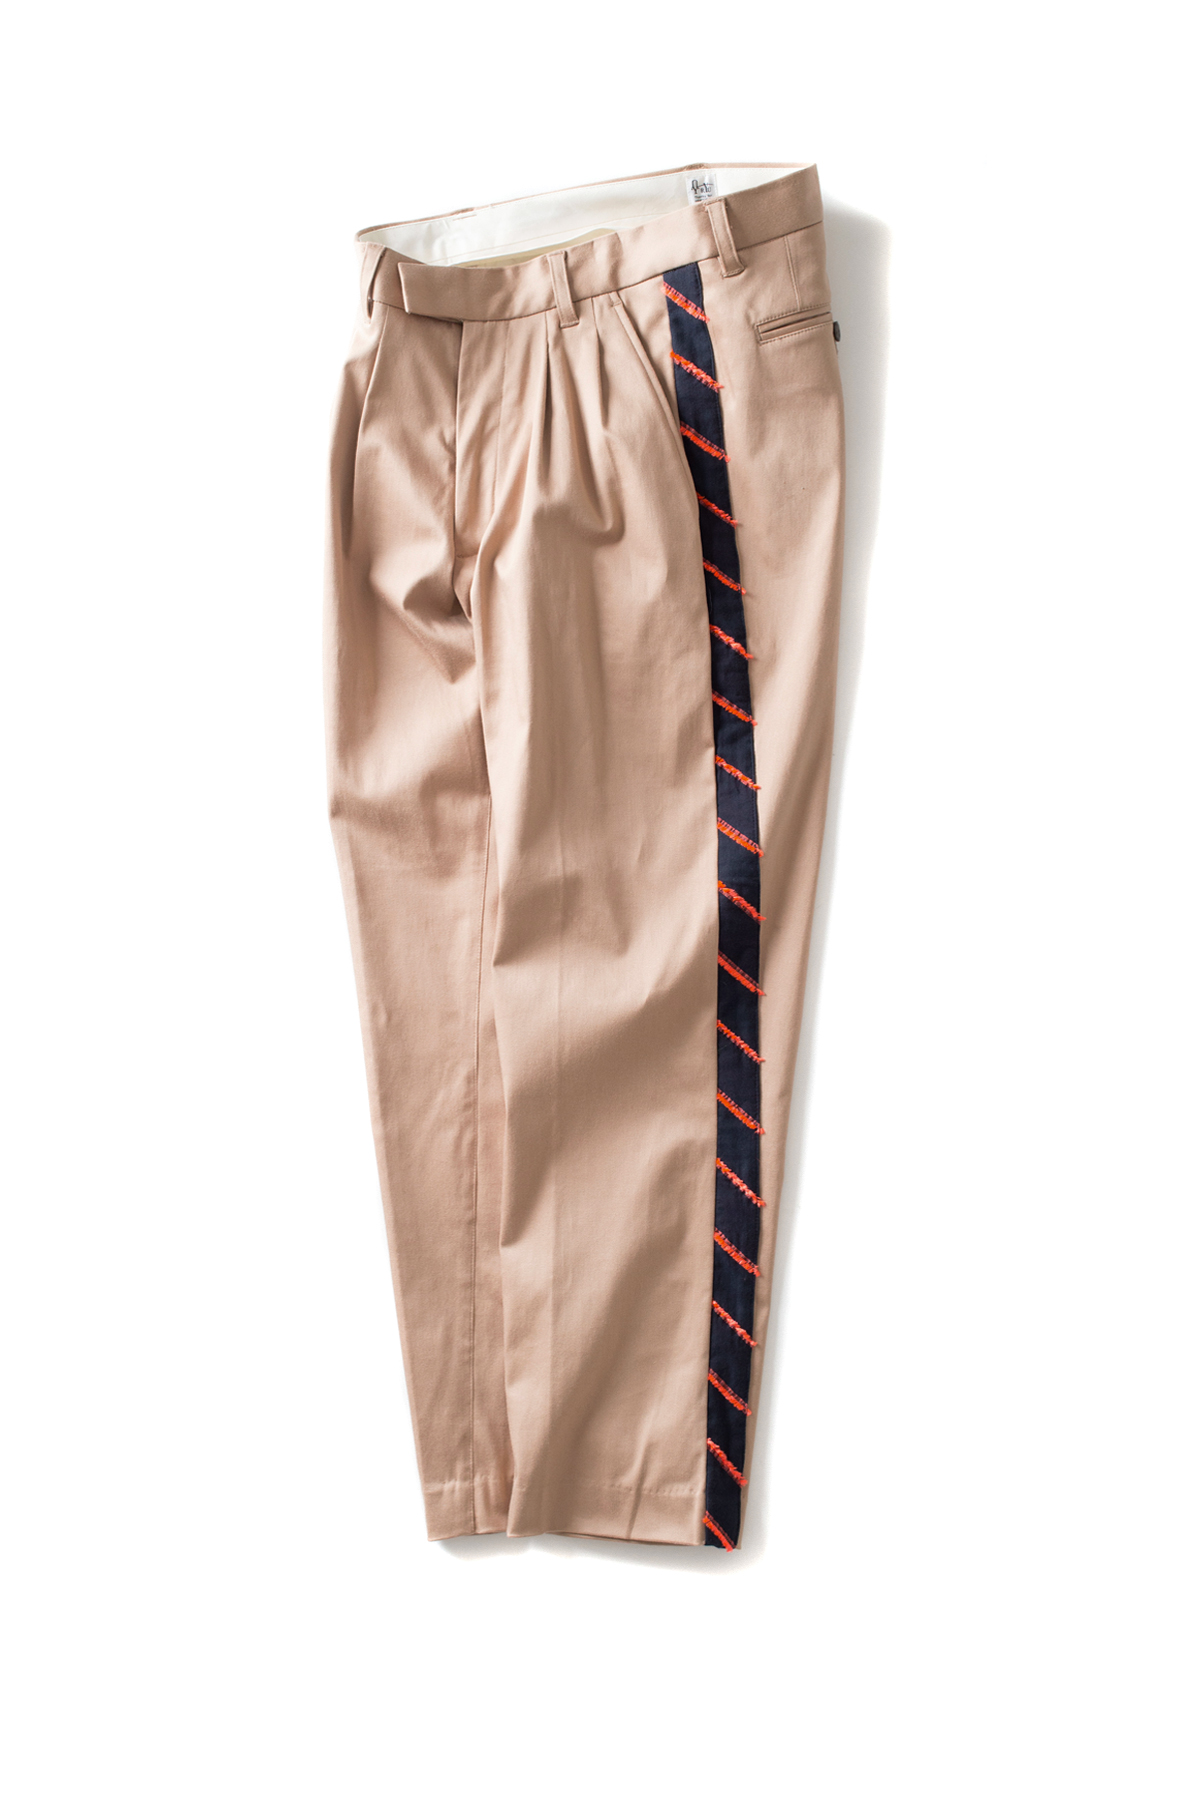 RYU : Two-tuck Tapered Pants With Fringe (Beige)